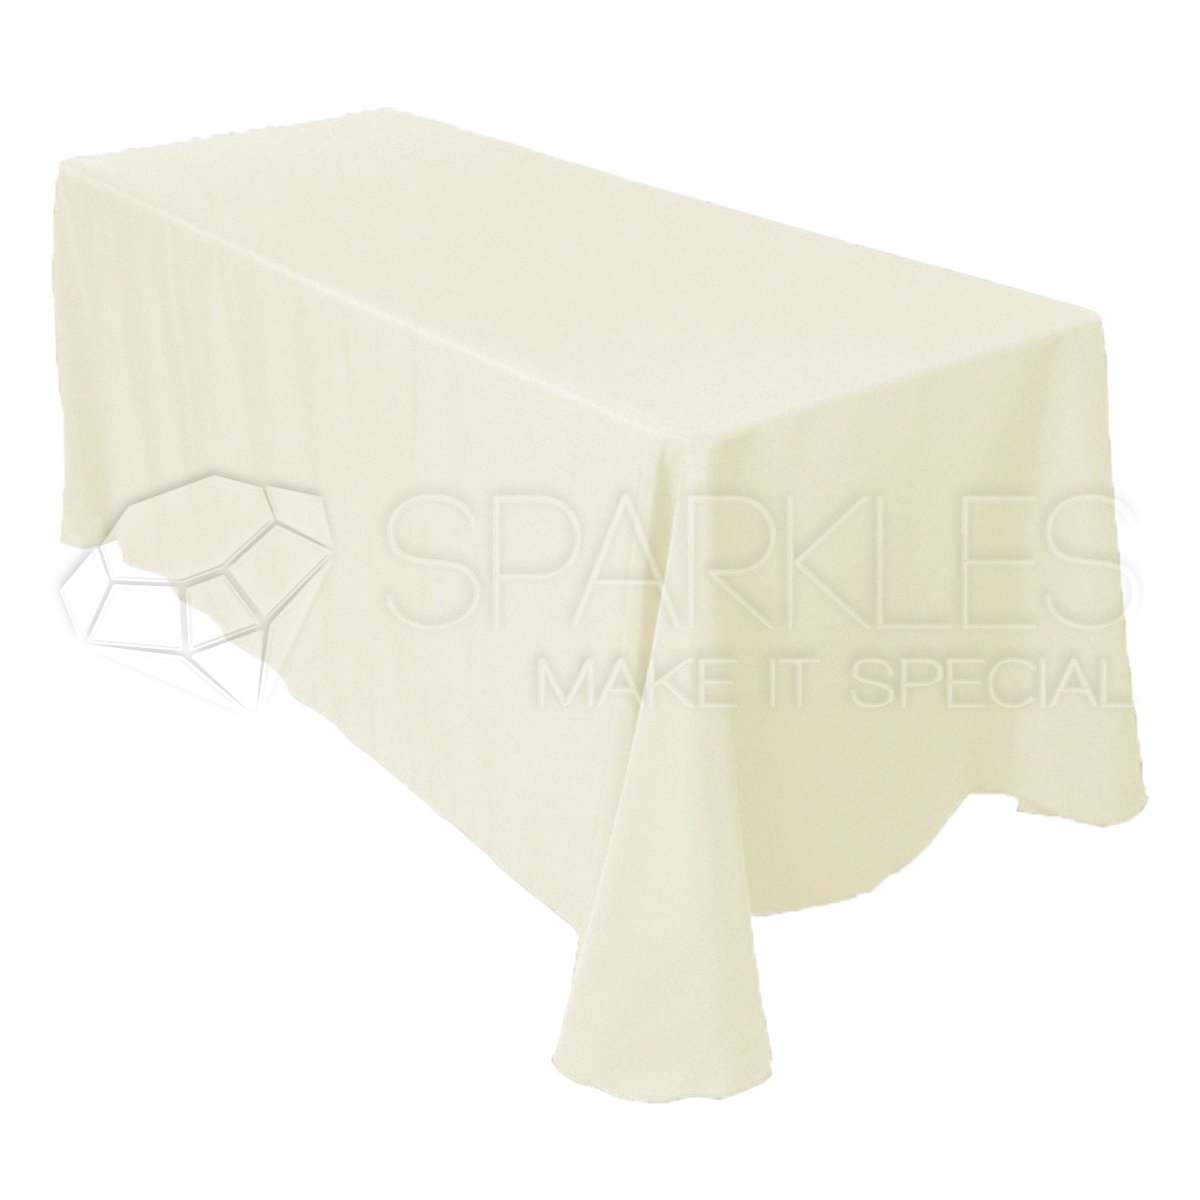 Sparkles Make It Special 10-pcs 90'' x 156'' Inch Rectangular Polyester Cloth Fabric Linen Tablecloth - Wedding Reception Restaurant Banquet Party - Machine Washable - Choice of Color - Ivory by Sparkles Make It Special